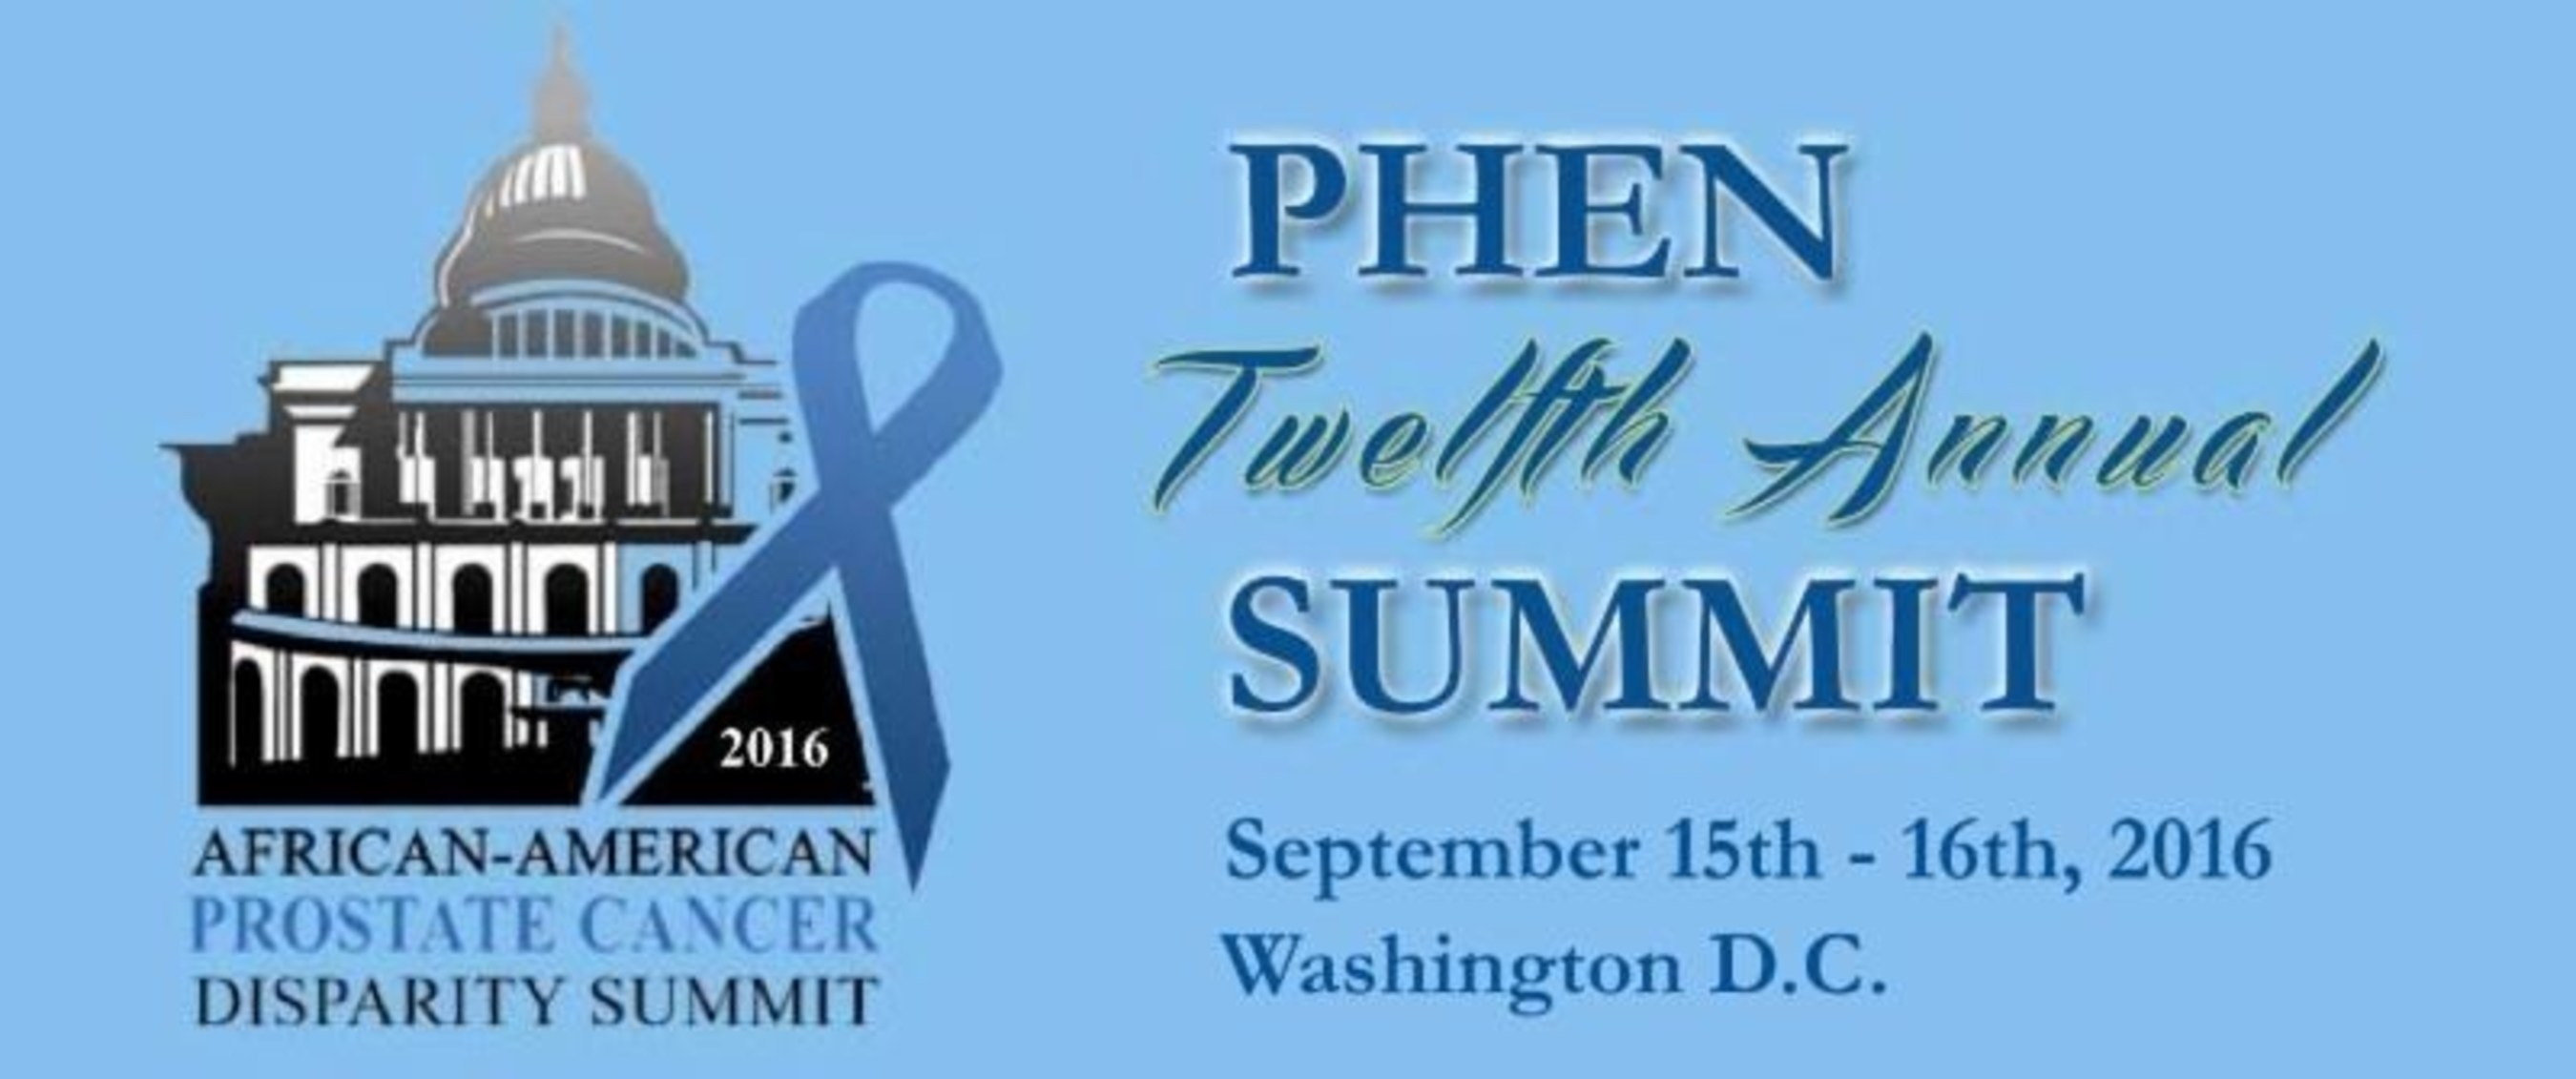 African American Prostate Cancer Disparity Summit Takes Place in Washington, DC, September 15-16, 2016